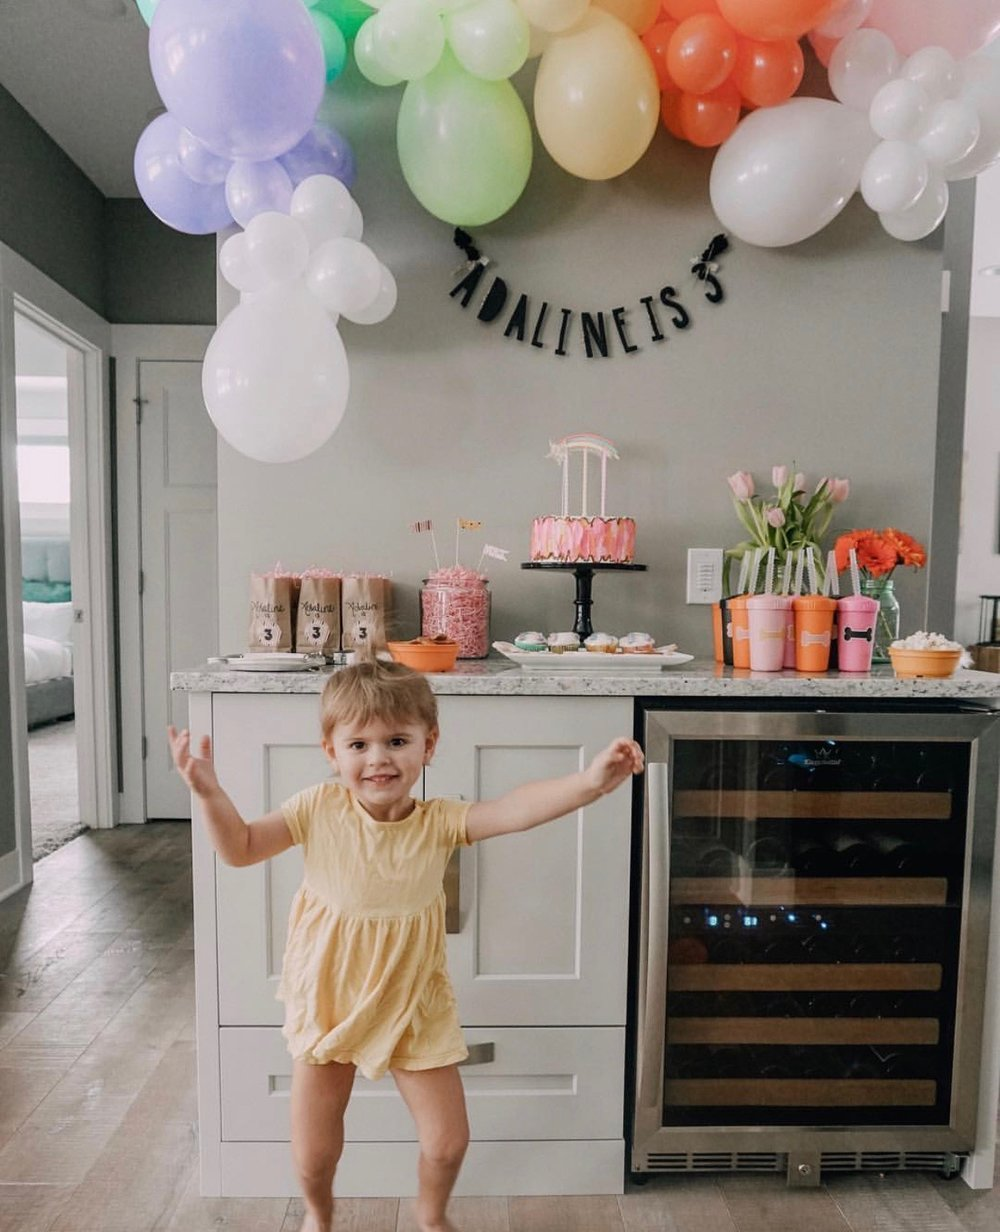 Adaline looks pretty pleased with her customized 3rd birthday party. We look forward to seeing what your happy dance looks like once your custom party box comes to life!